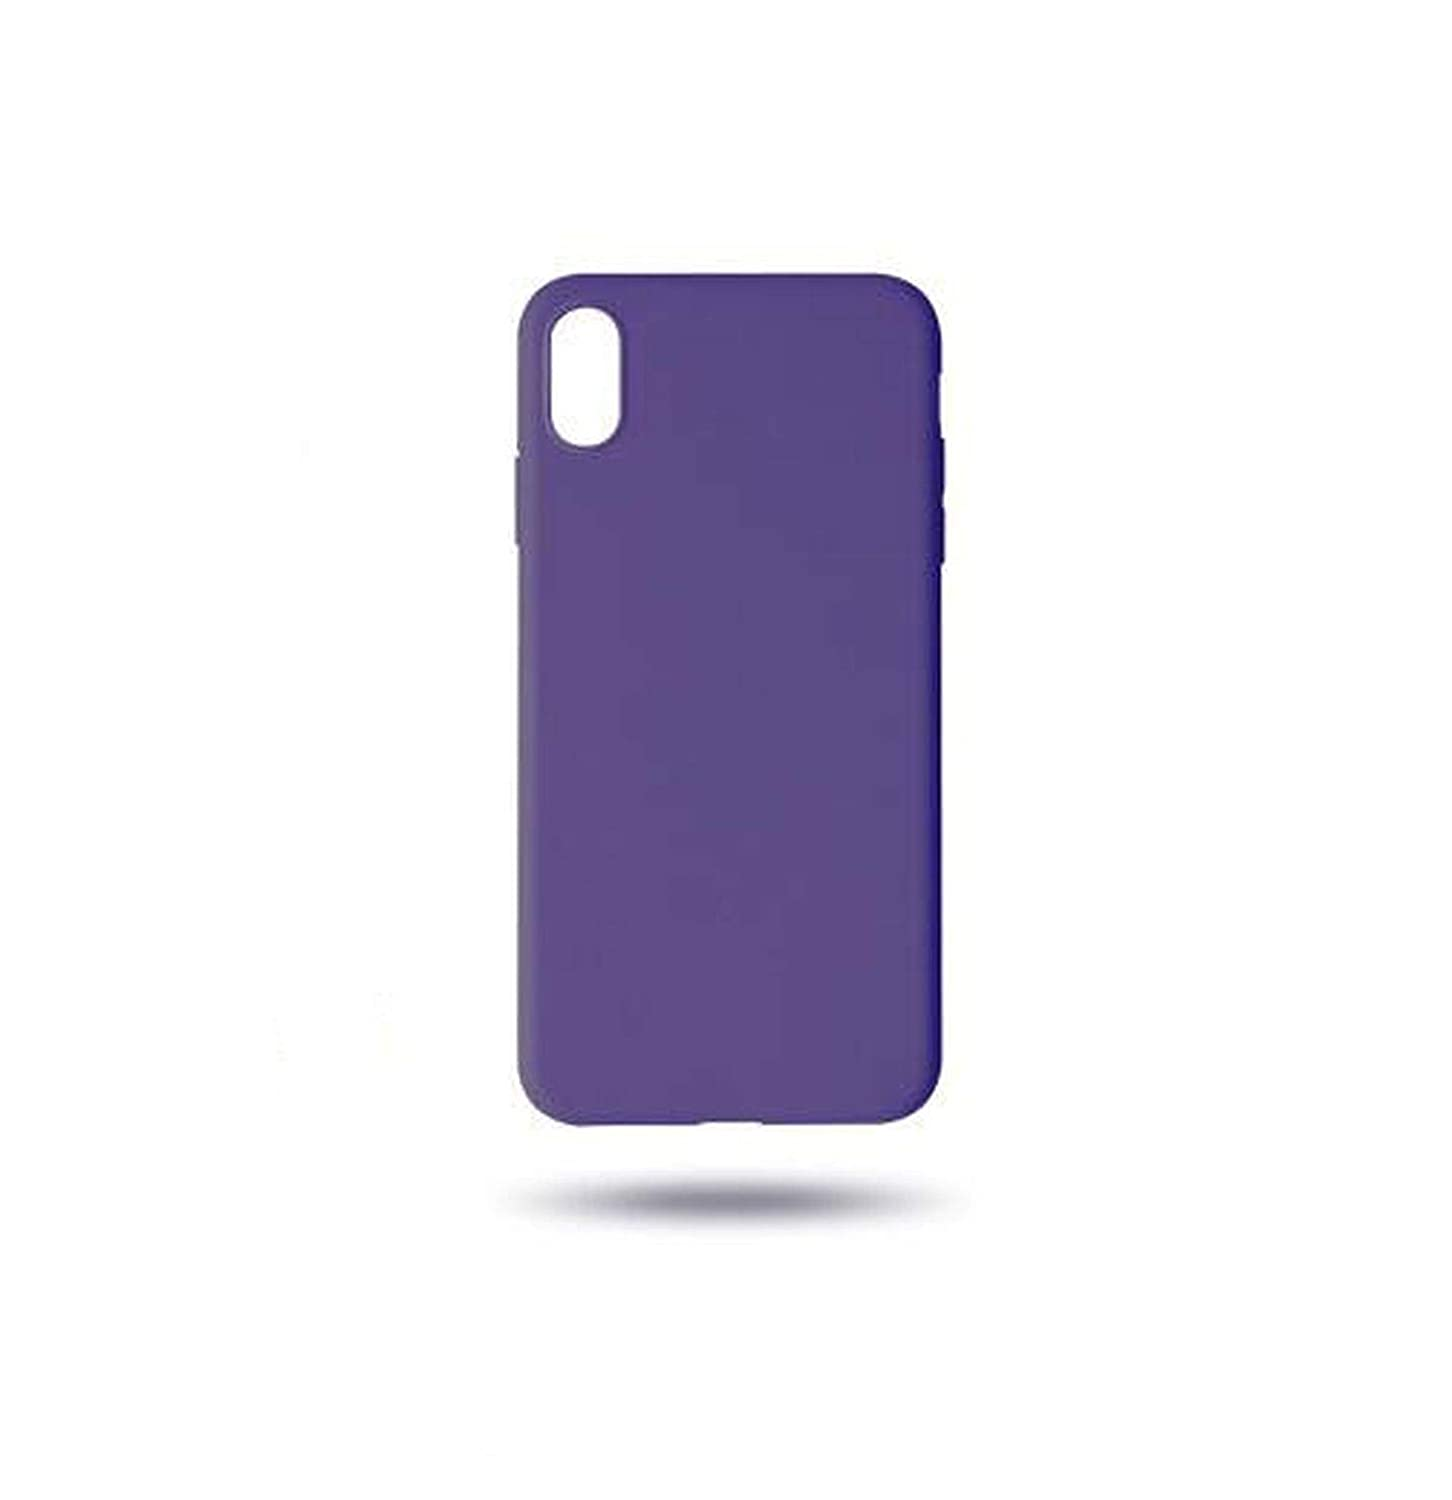 Amazon.com: Coque for iPhone 6 6s s 8 Case TPU fundas Cover ...